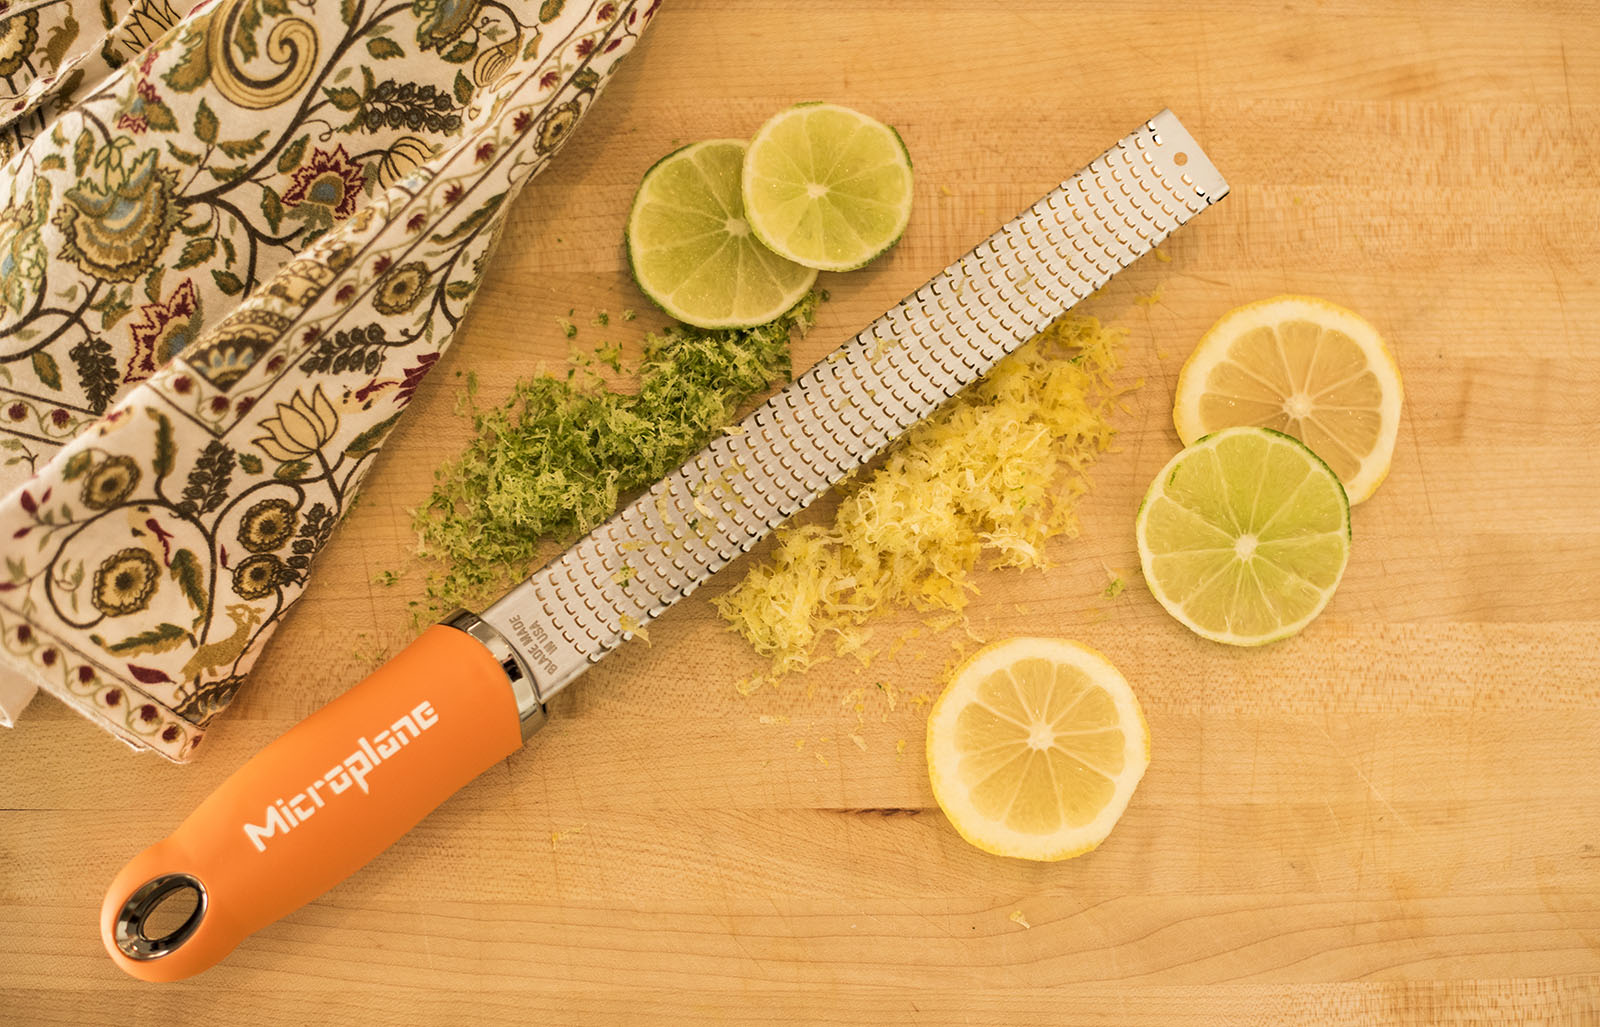 <a href='http://us.microplane.com/microplaneclassicseriespremiumzestergrater.aspx' target='_blank'><b>Premium Microplane</b></a><br>This new version with a premium soft-touch handle and nonscratch